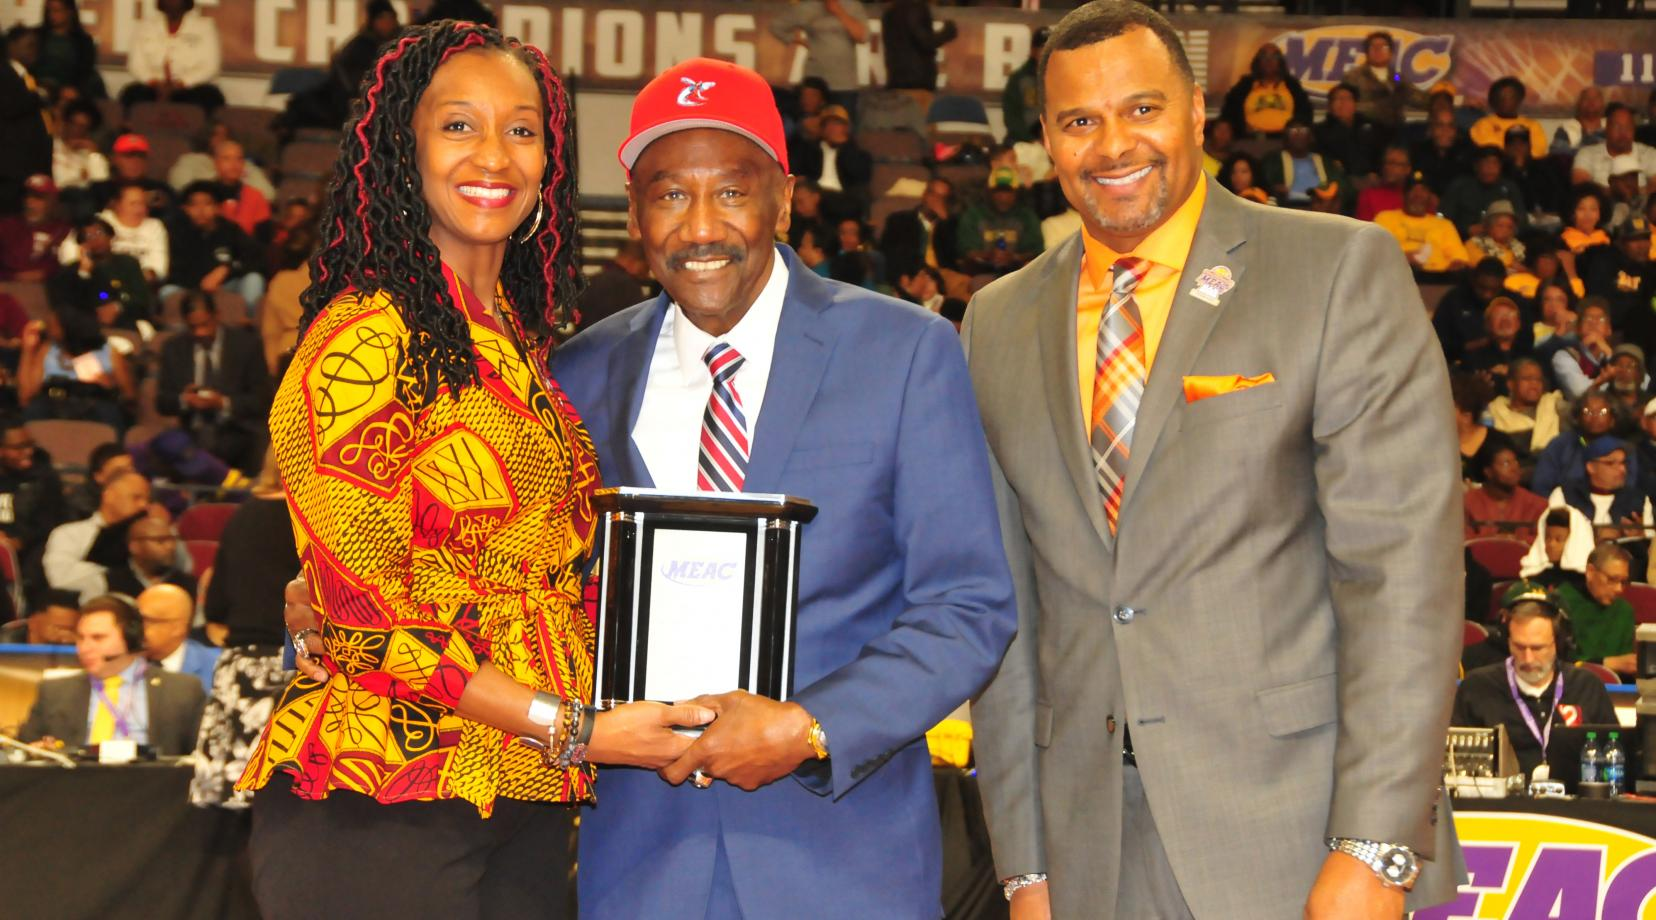 Robert P. Vanderhost (center), DSC class of 1972, was among the 2018 MEAC Alumni of the Year. He is shown March 8 at the MEAC Basketball Tourney accepting the award from two conference officials.